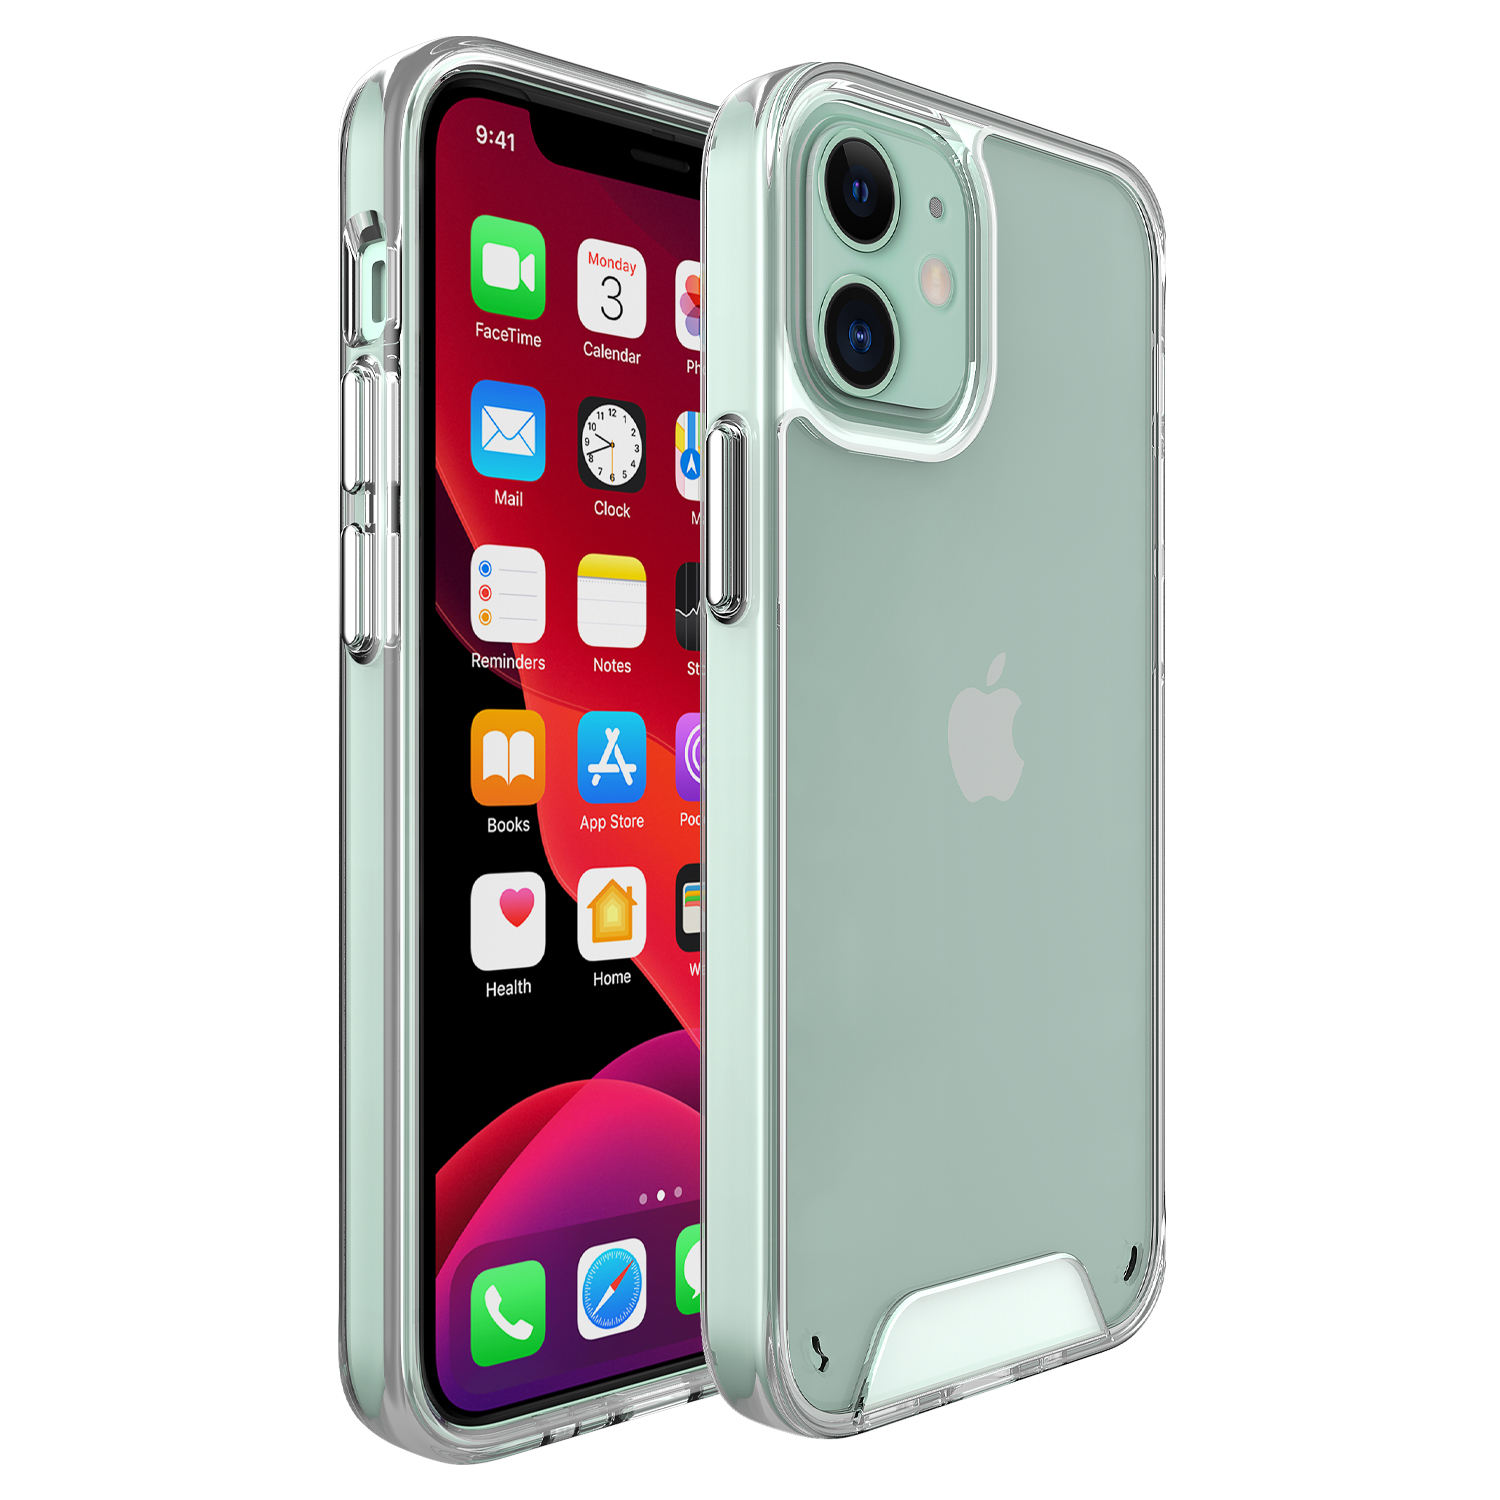 for iphone 12 mini 12 pro max mobile phone cases Plating tpu space clear case for iphone 12